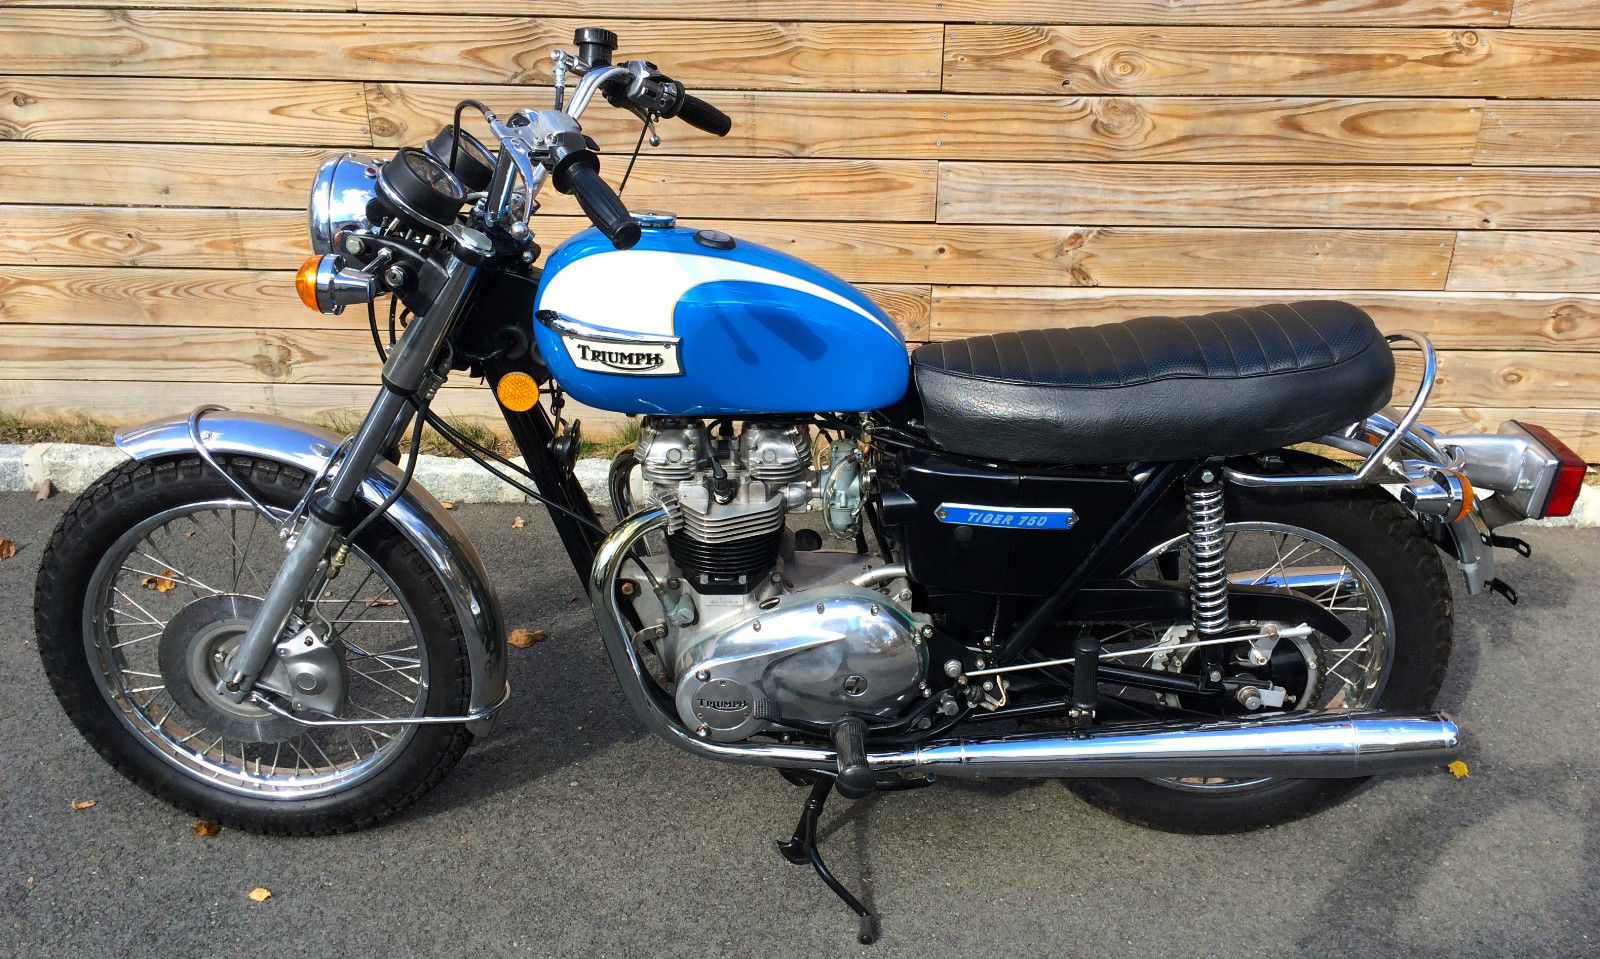 Triumph Tiger - 1973 - Left Side View, Transmission Cover, Triumph Tiger Badge, Seat and Reflector.